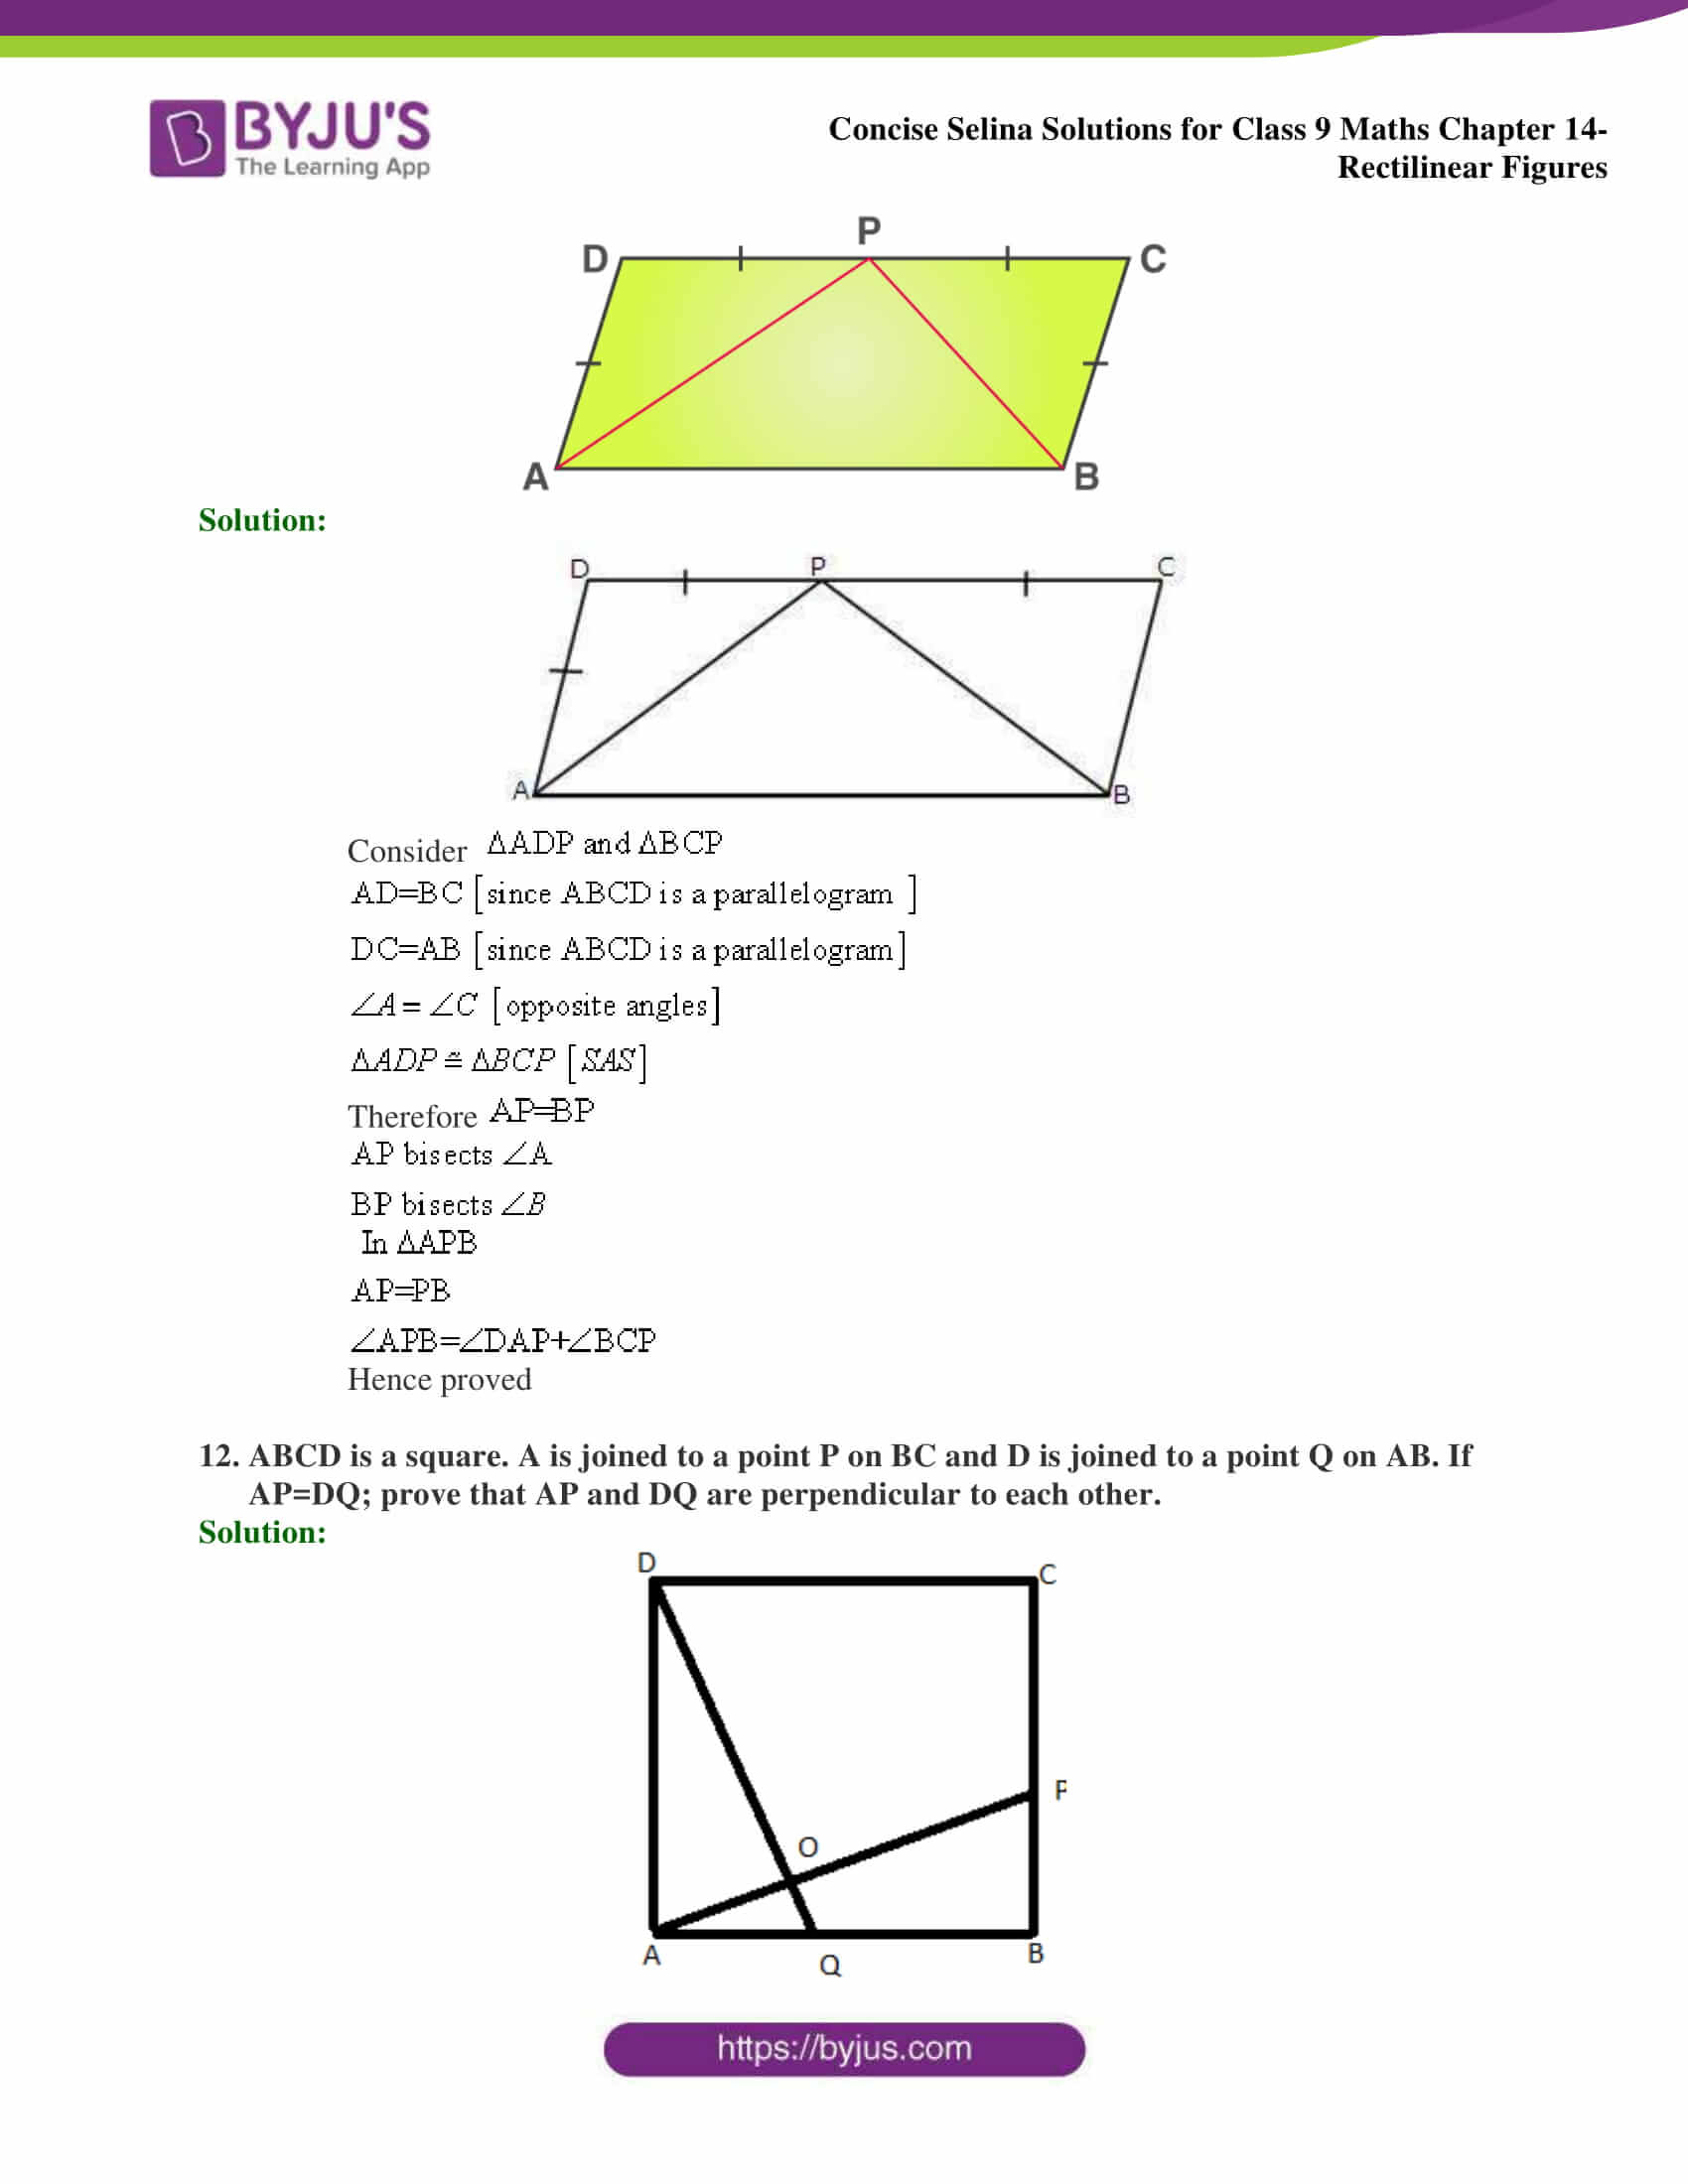 selina Solutions for Class 9 Maths Chapter 14 part 26